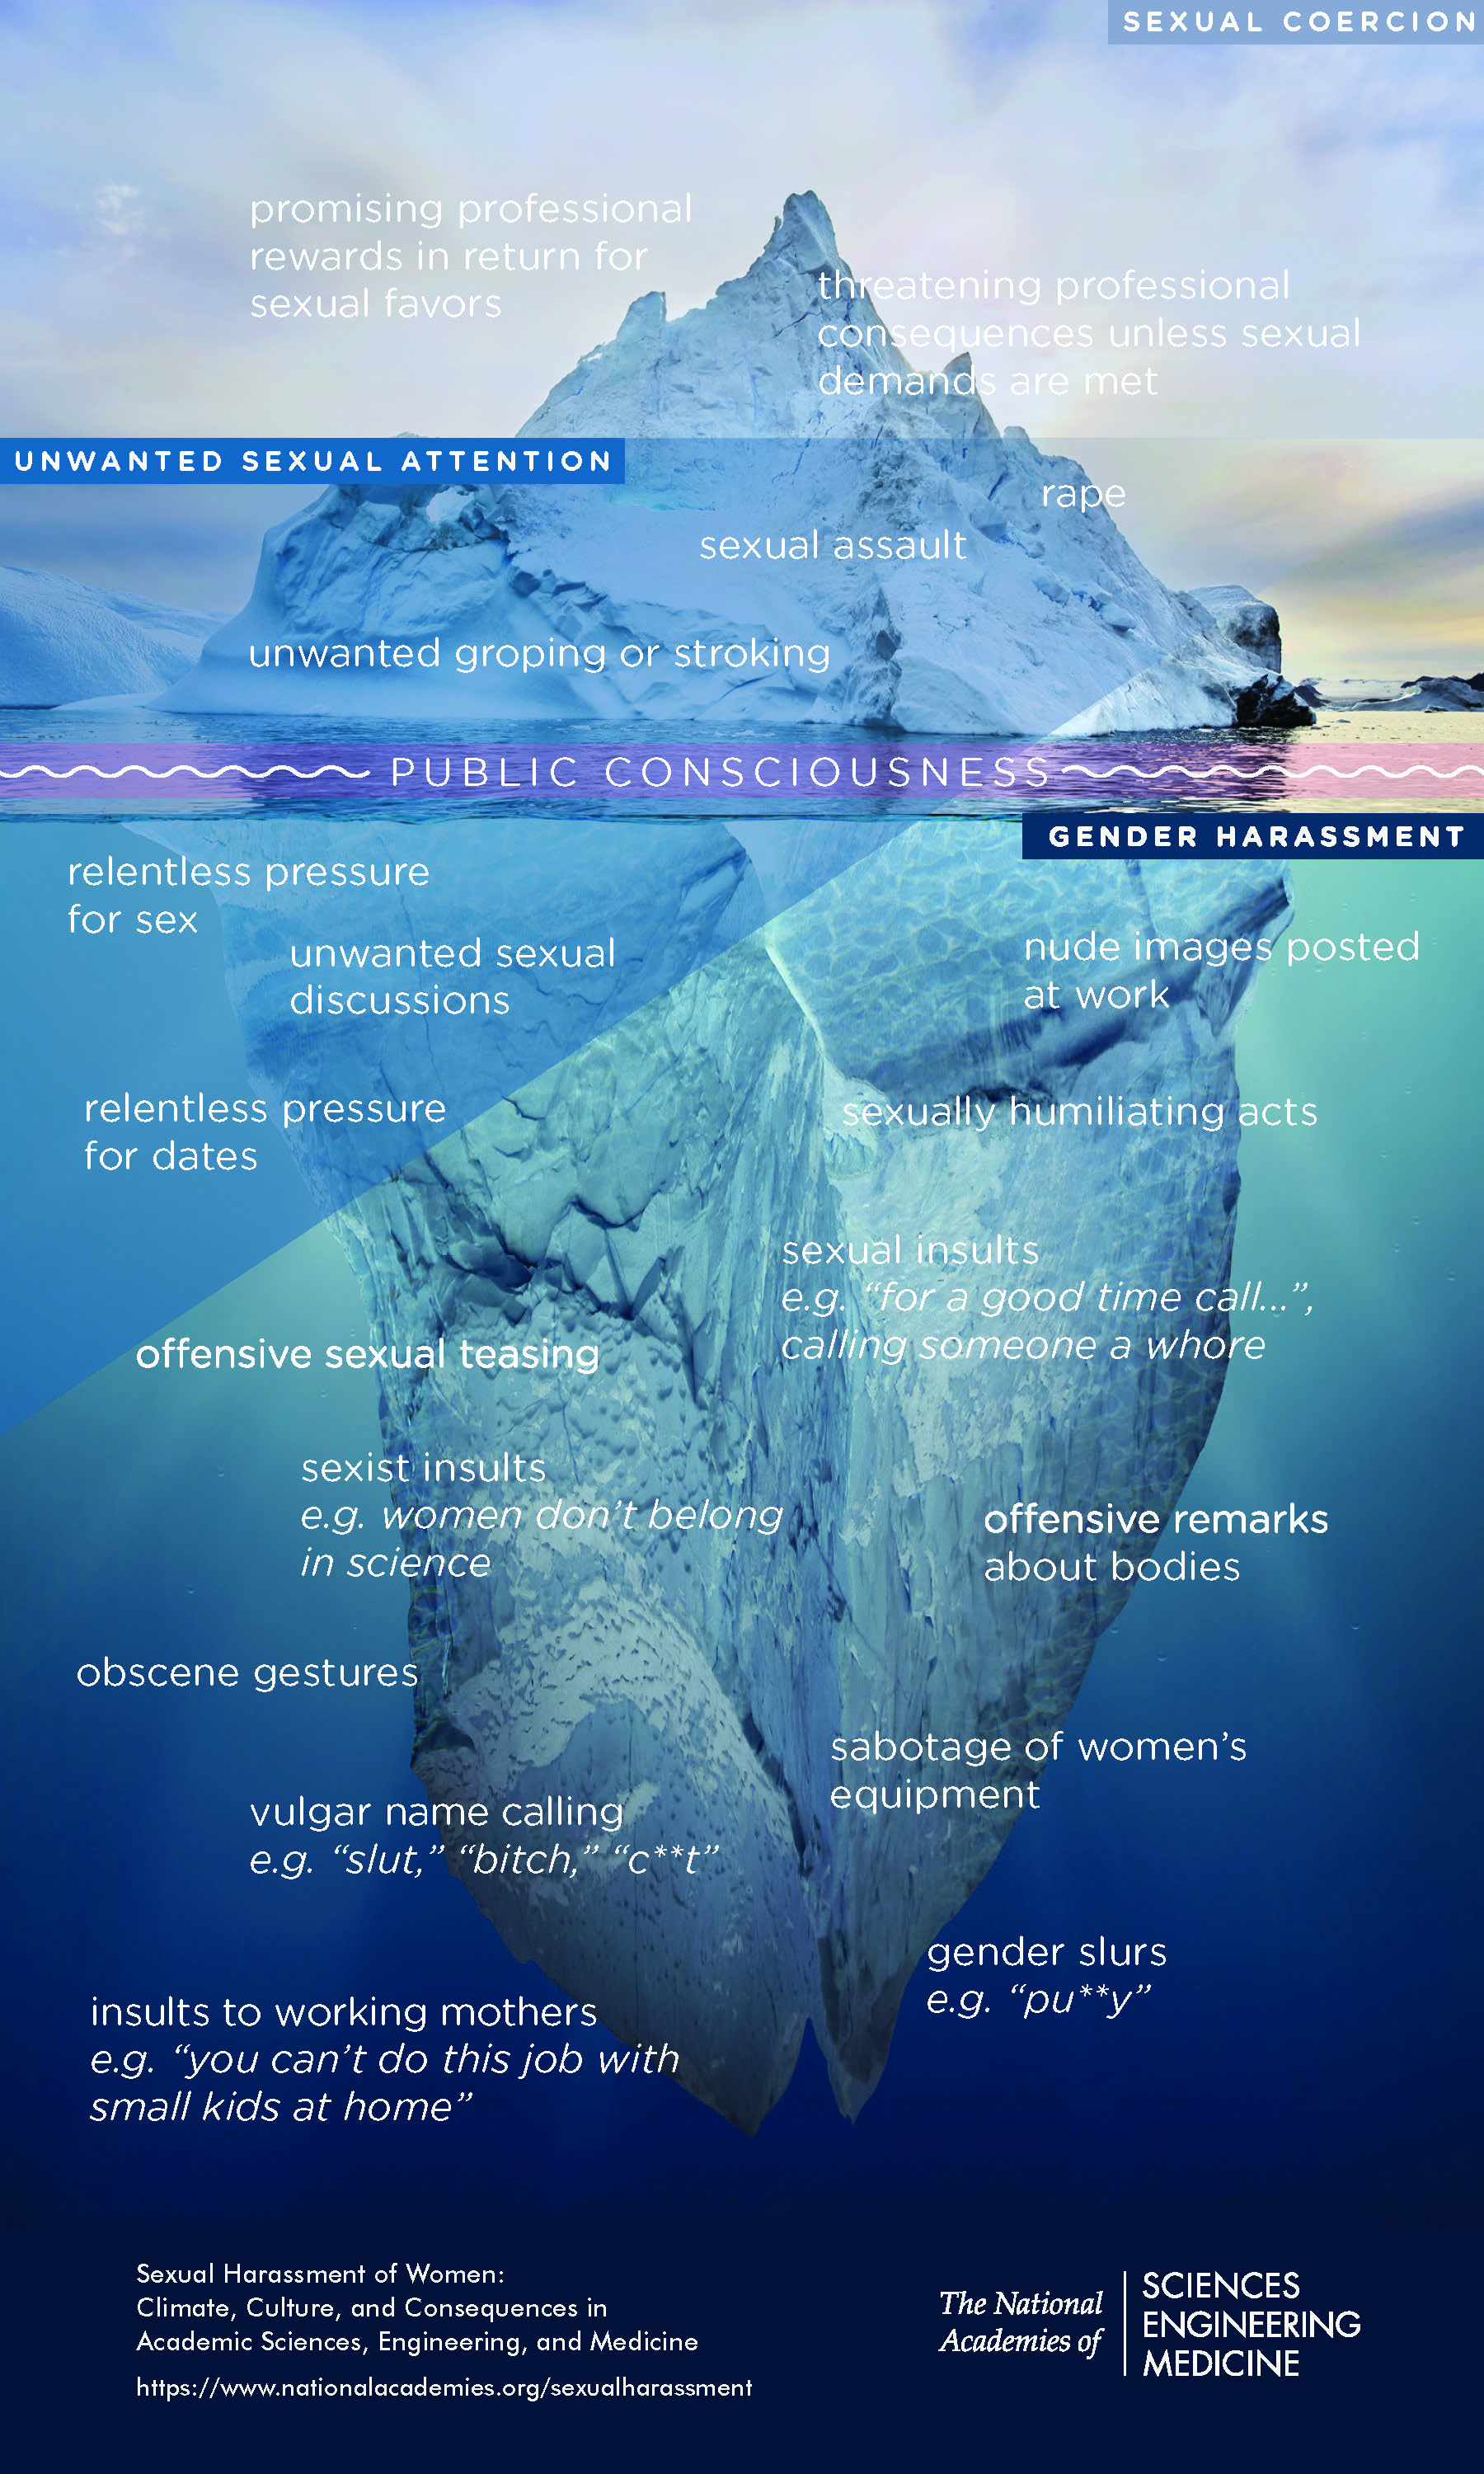 infographic displaying the public consciousness of sexual harassment (see full text